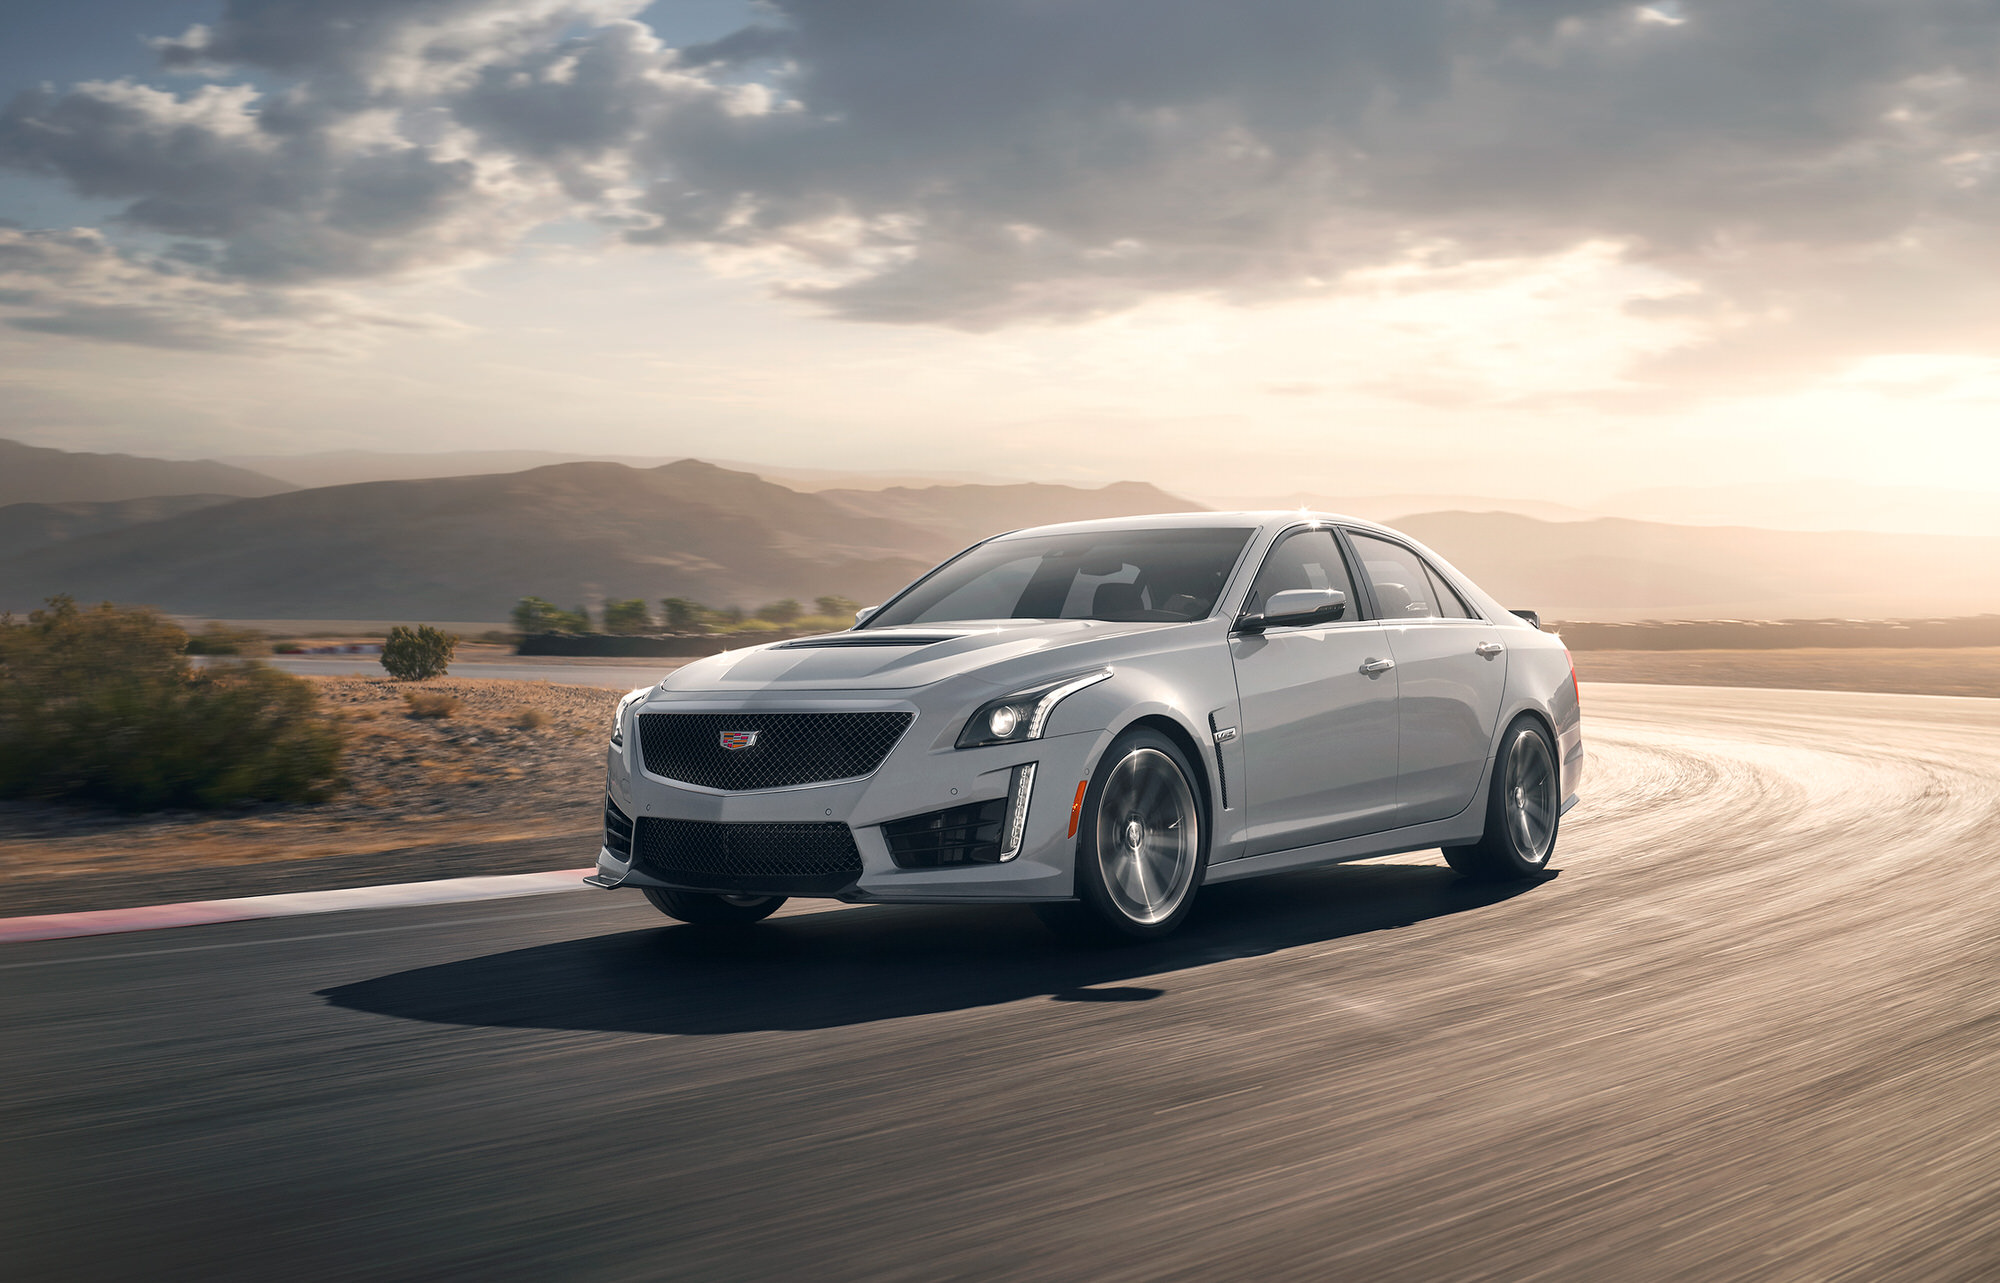 Cadillac CTS-V commercial photography